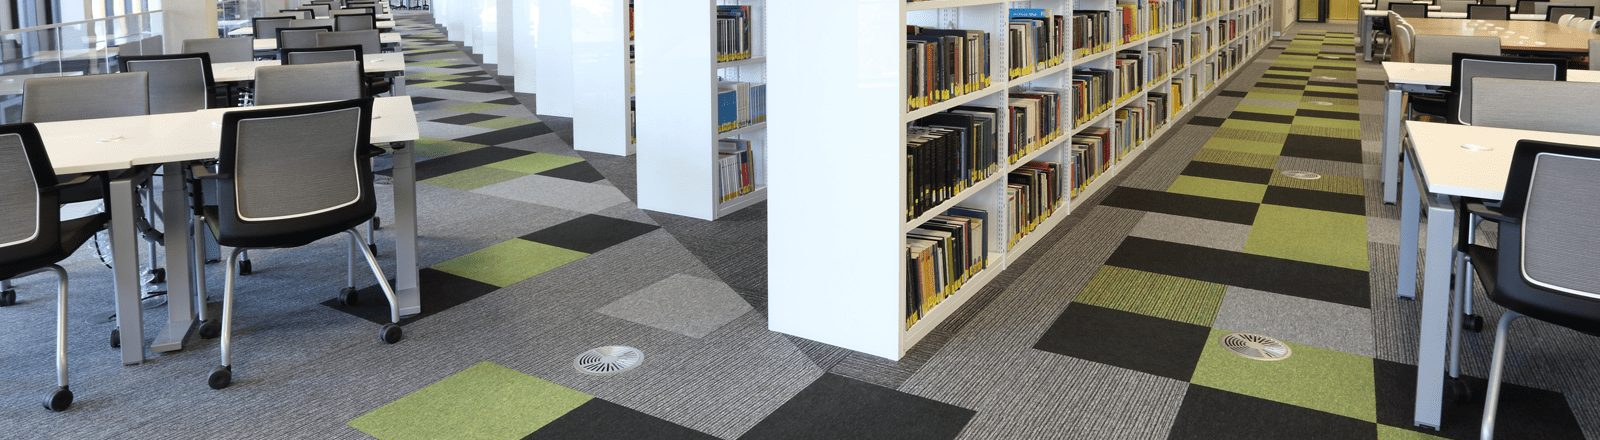 School Library with School Flooring in Birmingham